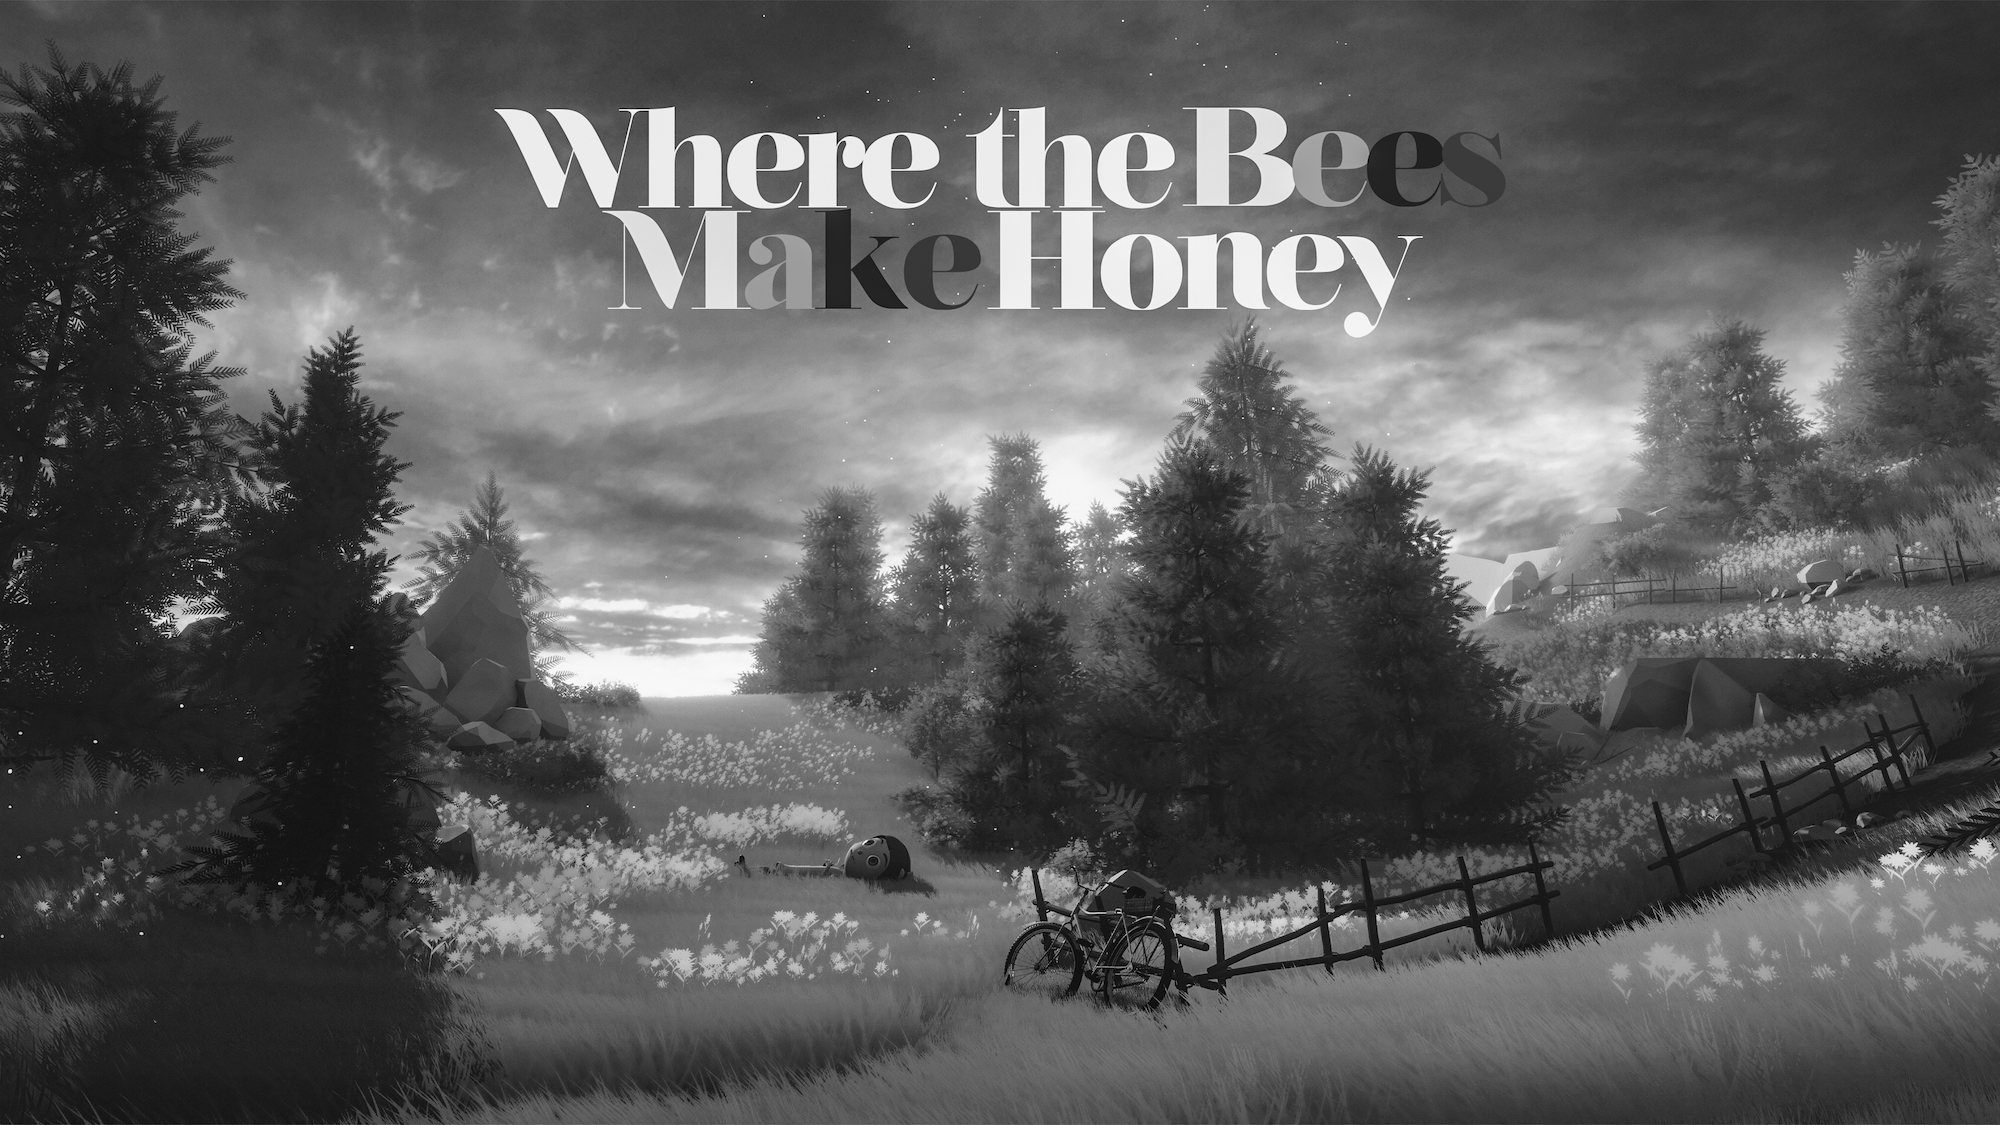 Learn more about Where The Bees Make Honey by Brian Wilson